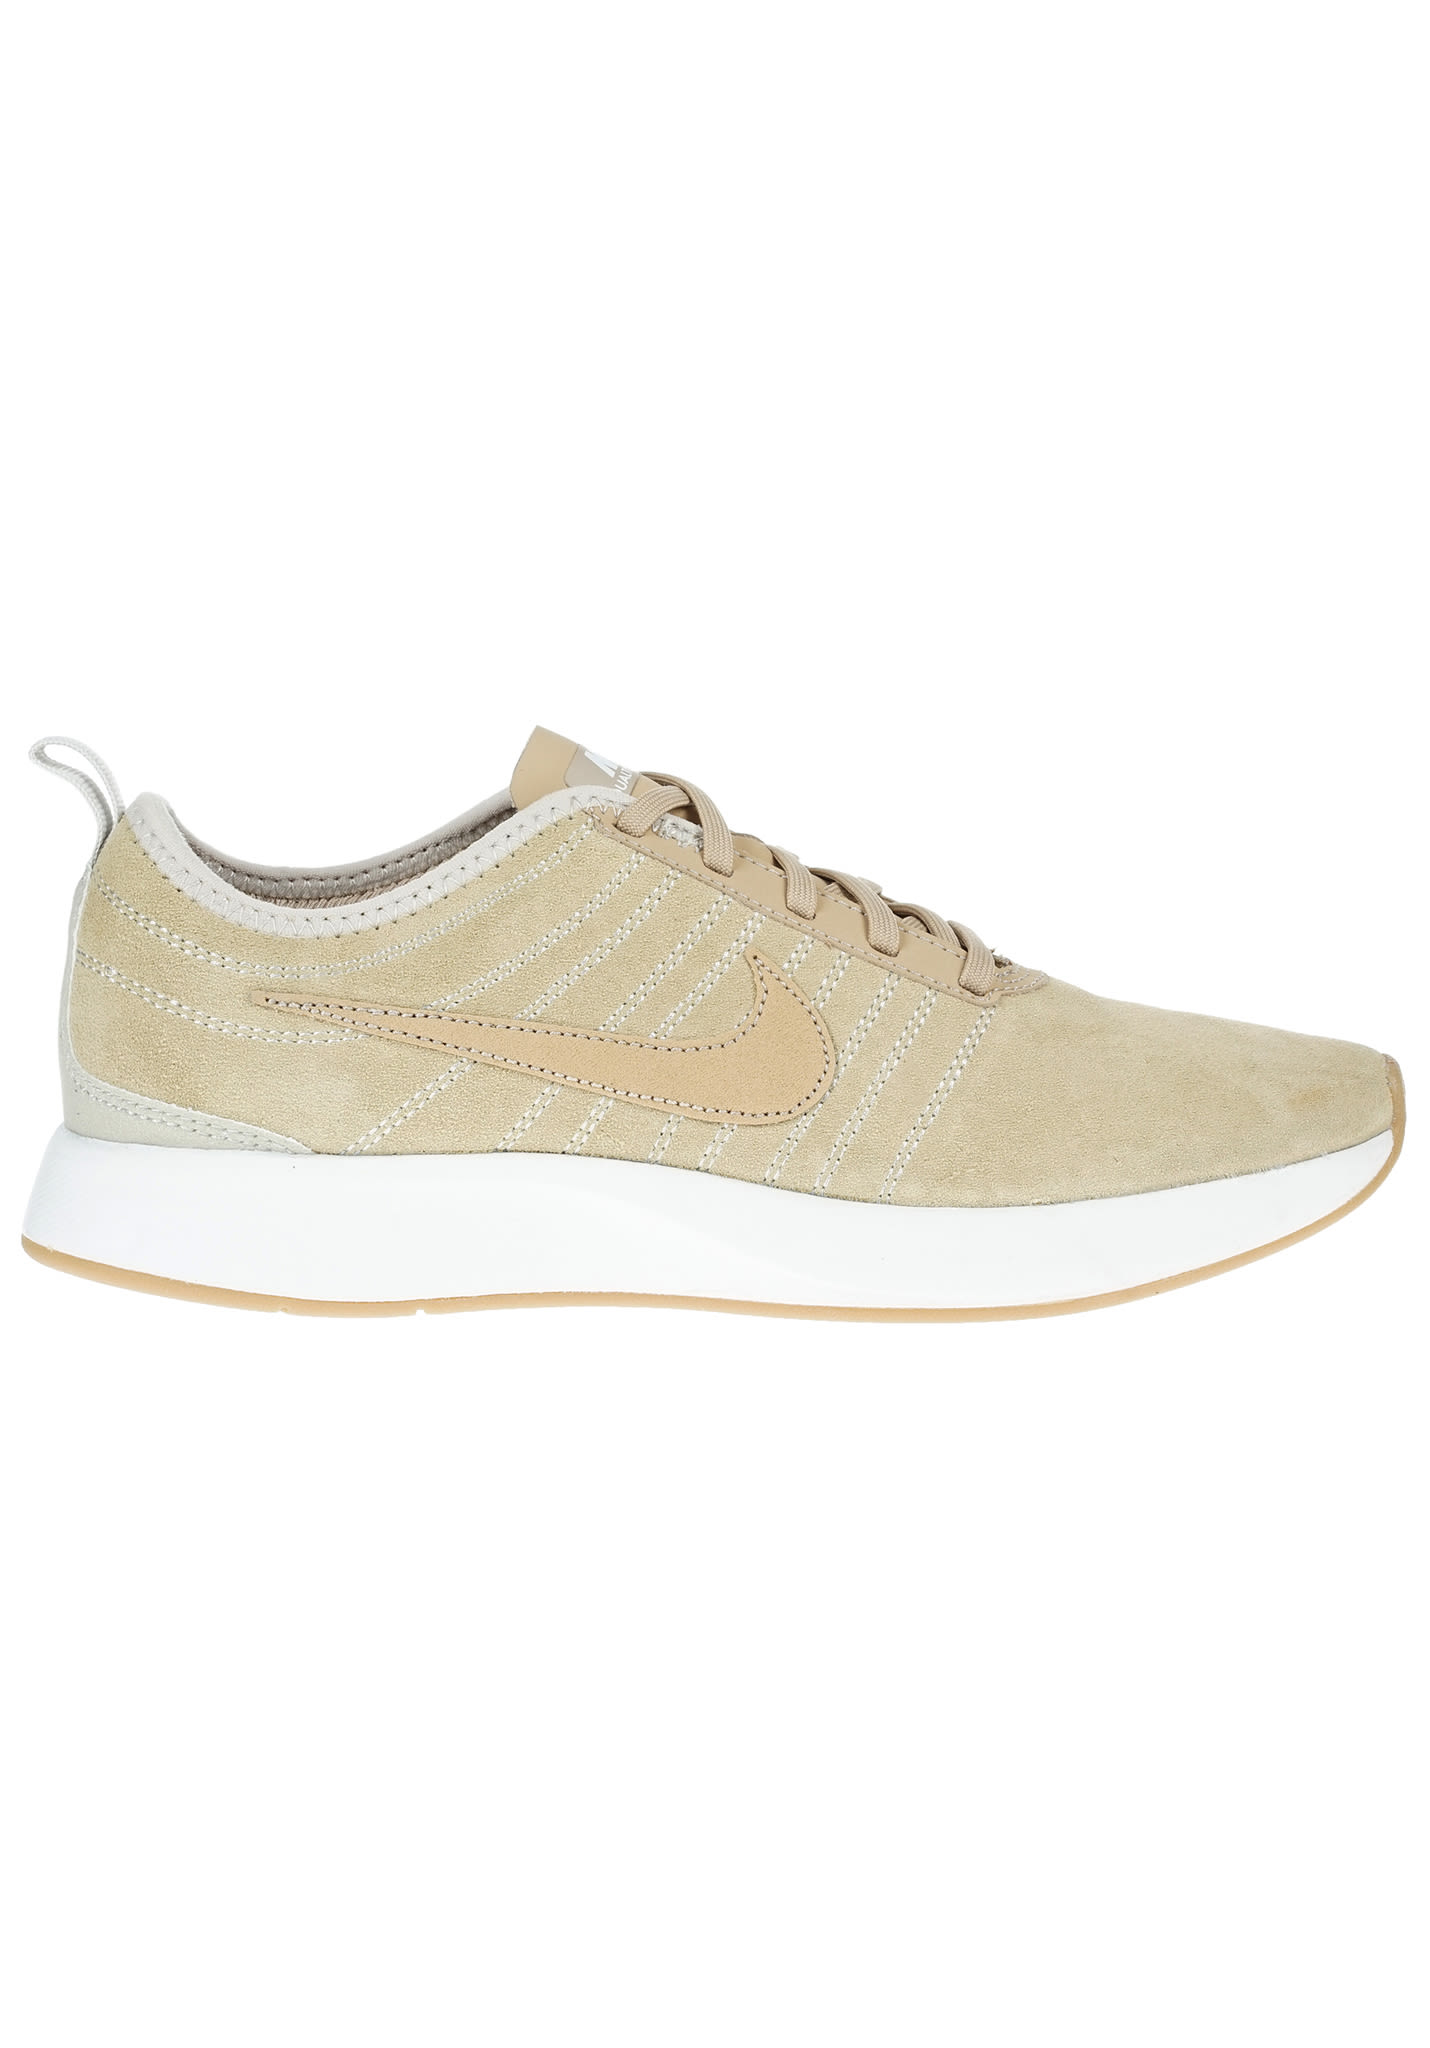 outlet store sale exquisite style wholesale price NIKE SPORTSWEAR Dualtone Racer SE - Sneakers for Women - Beige